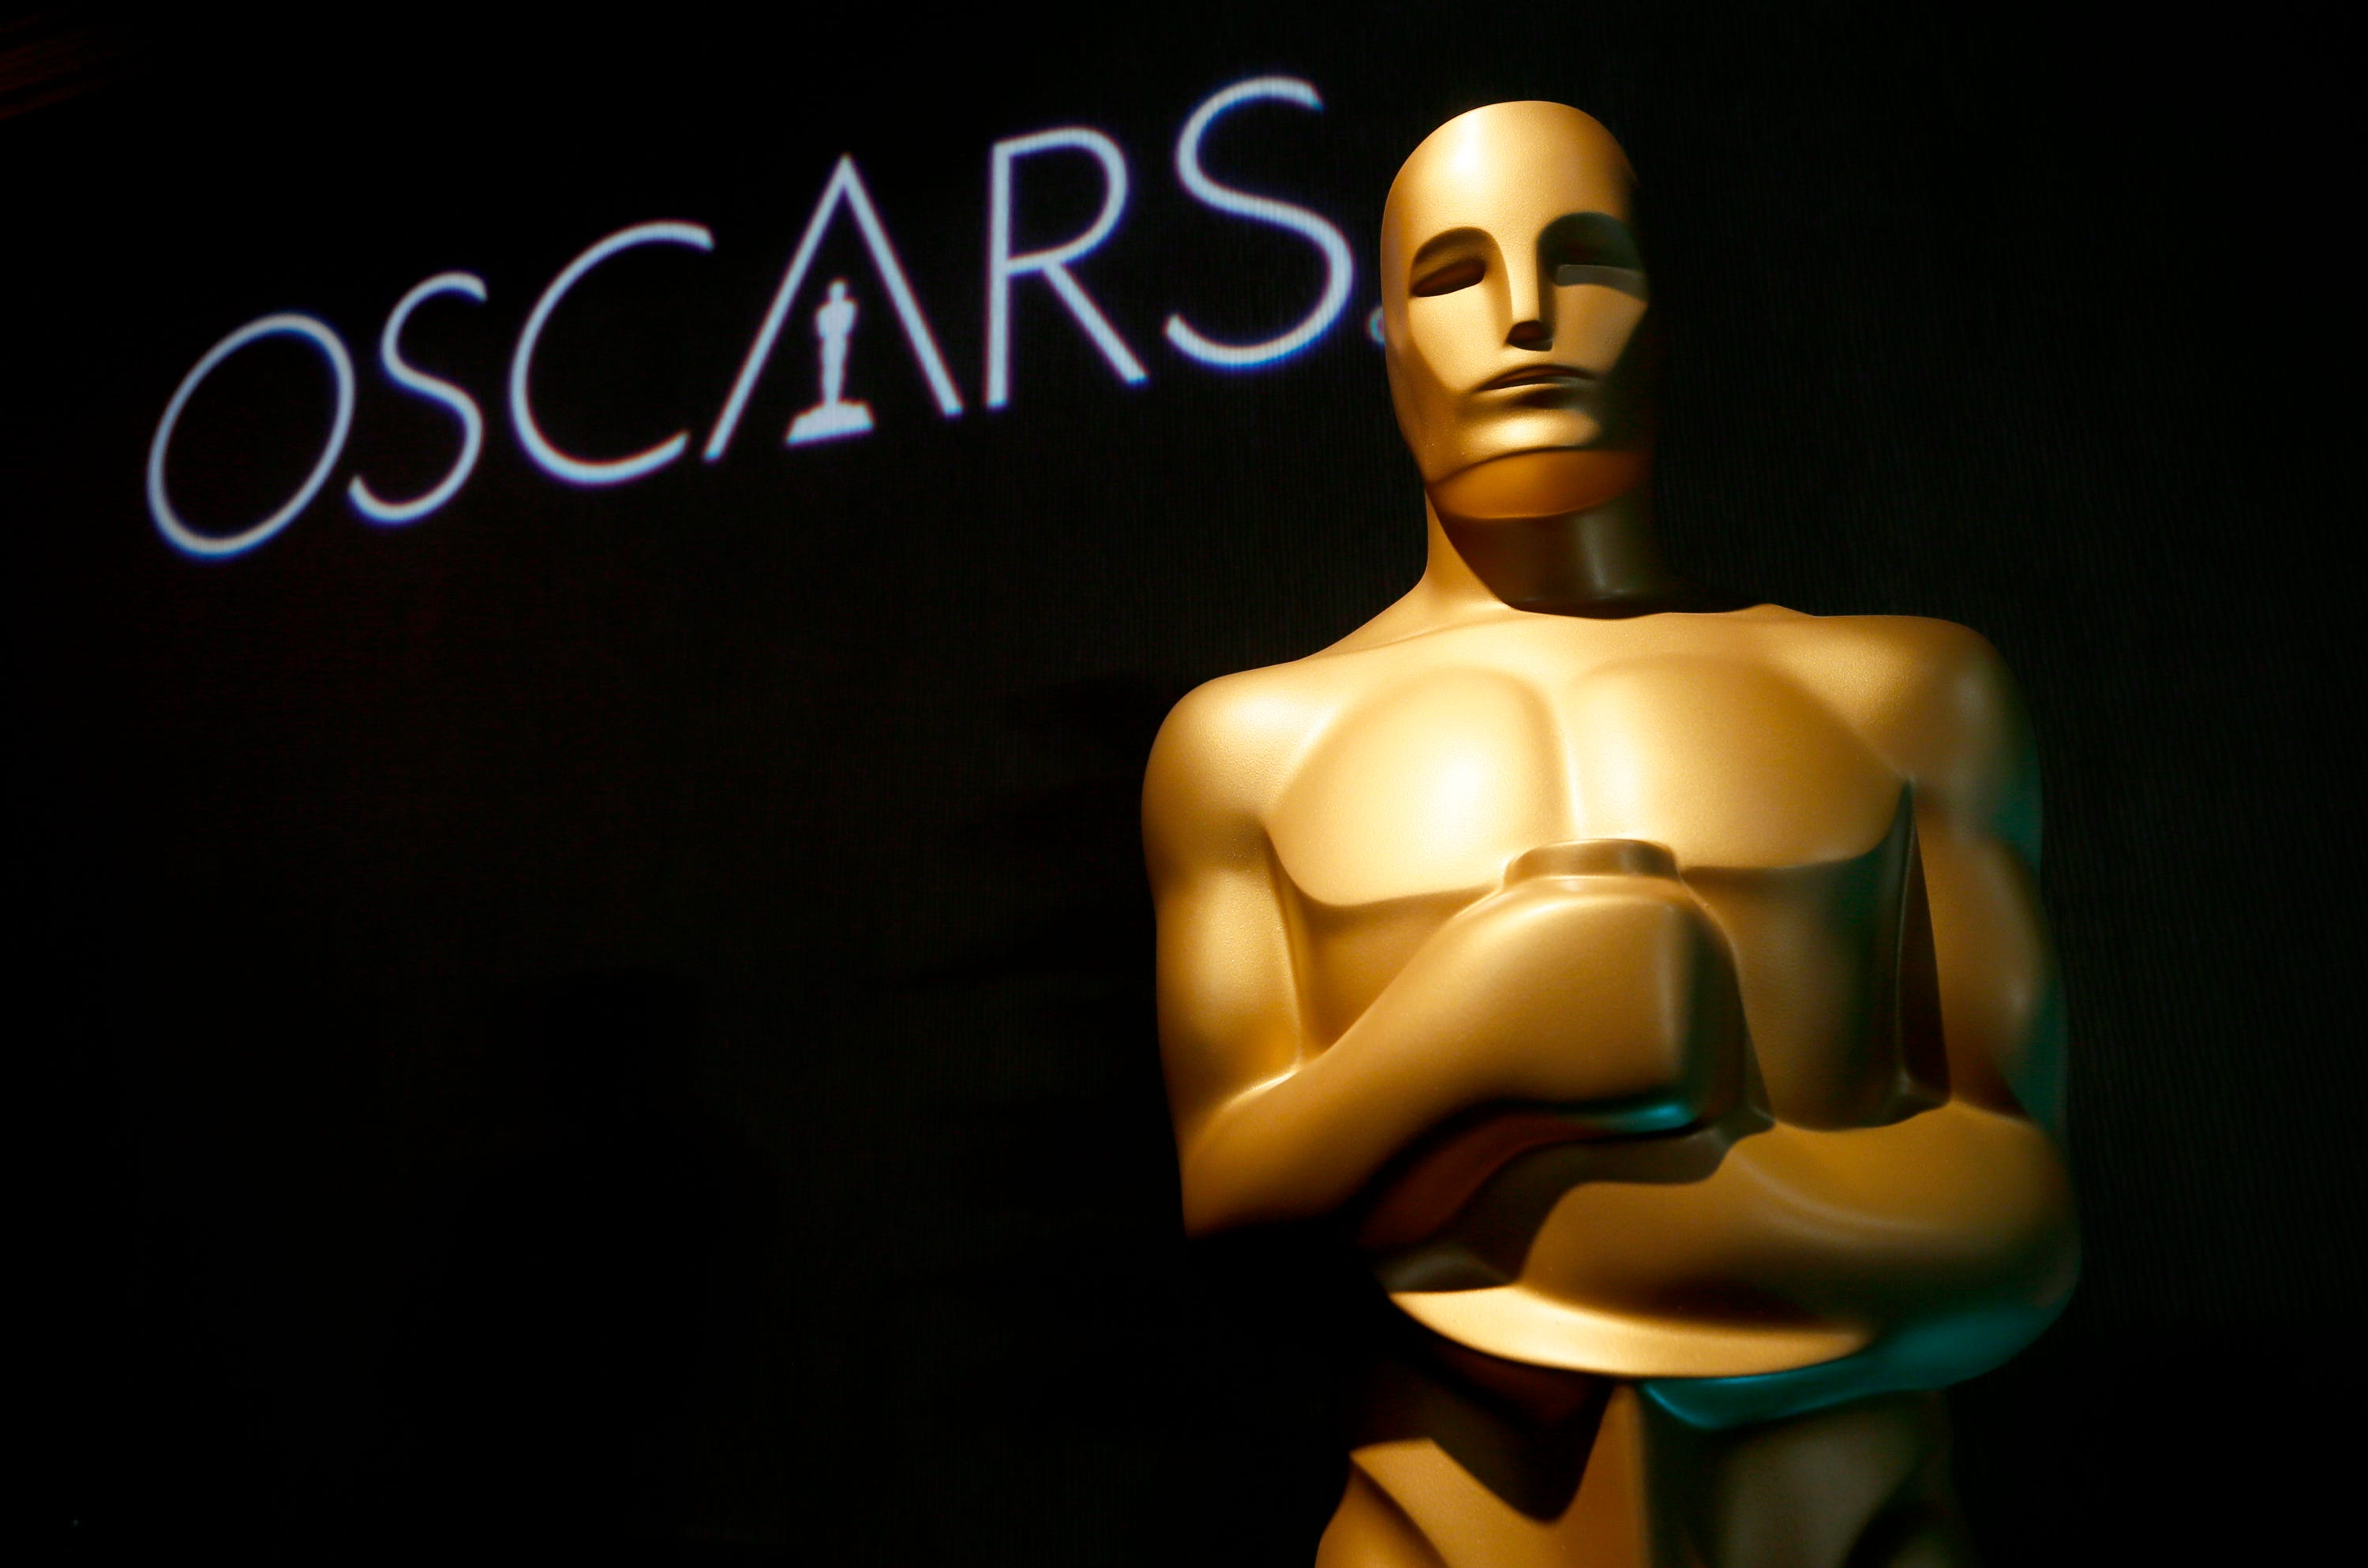 Oscars 2020 Quiz: How do you gain Hollywood s rarest honor without being nominated?